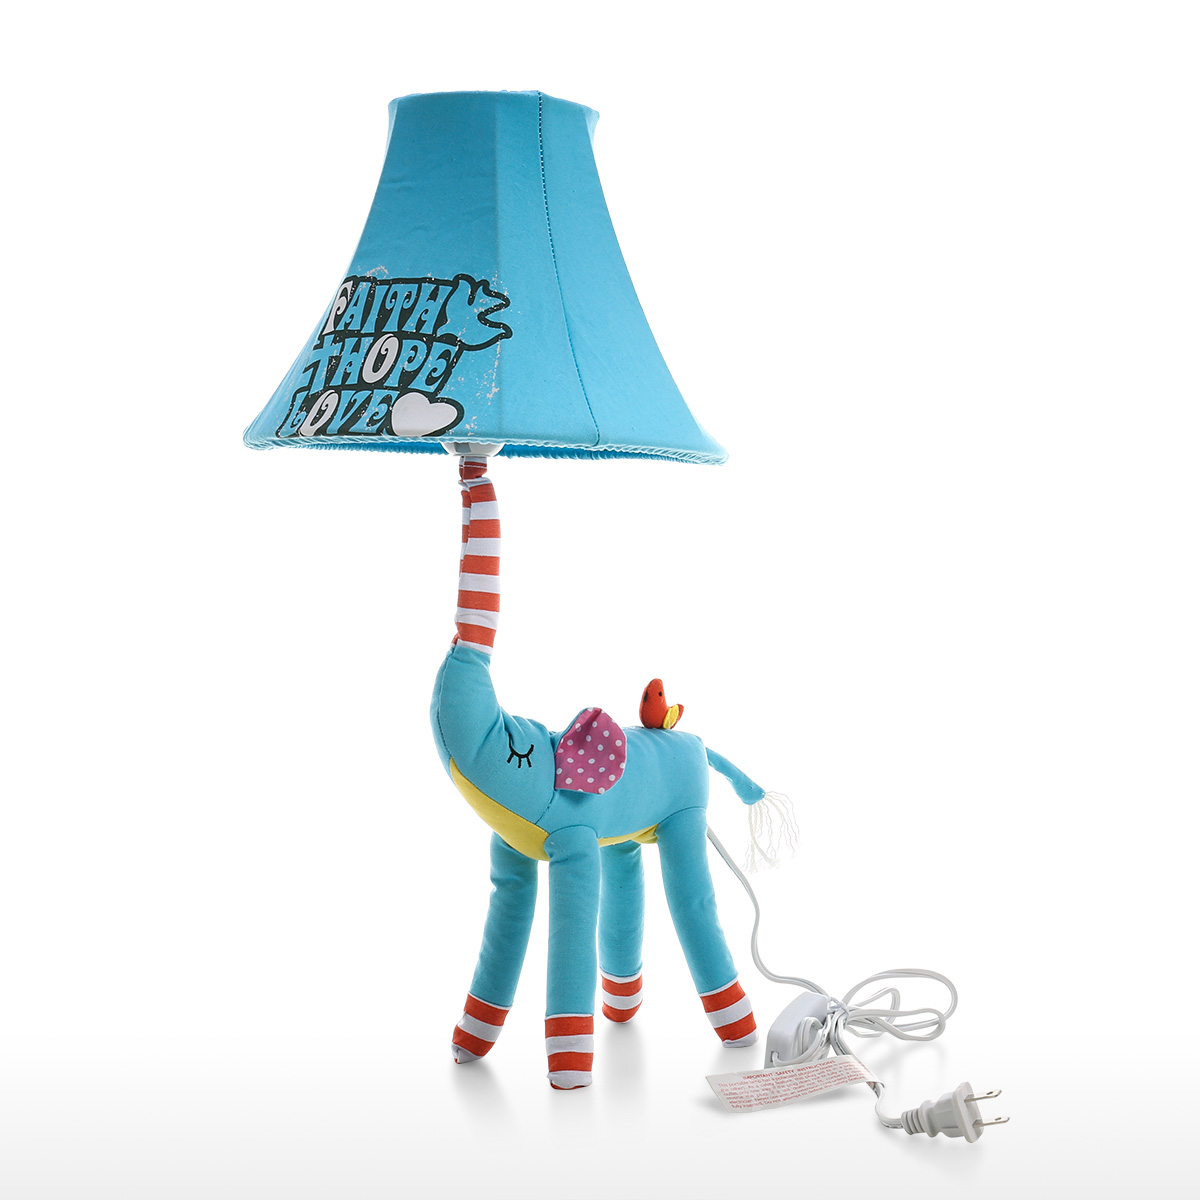 Animal Lamp For Nursery Blue Elephant Lamp Us Plug Animal Lamp Kids Table Lamp Night Light For Kids Lampshade For Children Bedroom Nursery Room Without Led Bulb